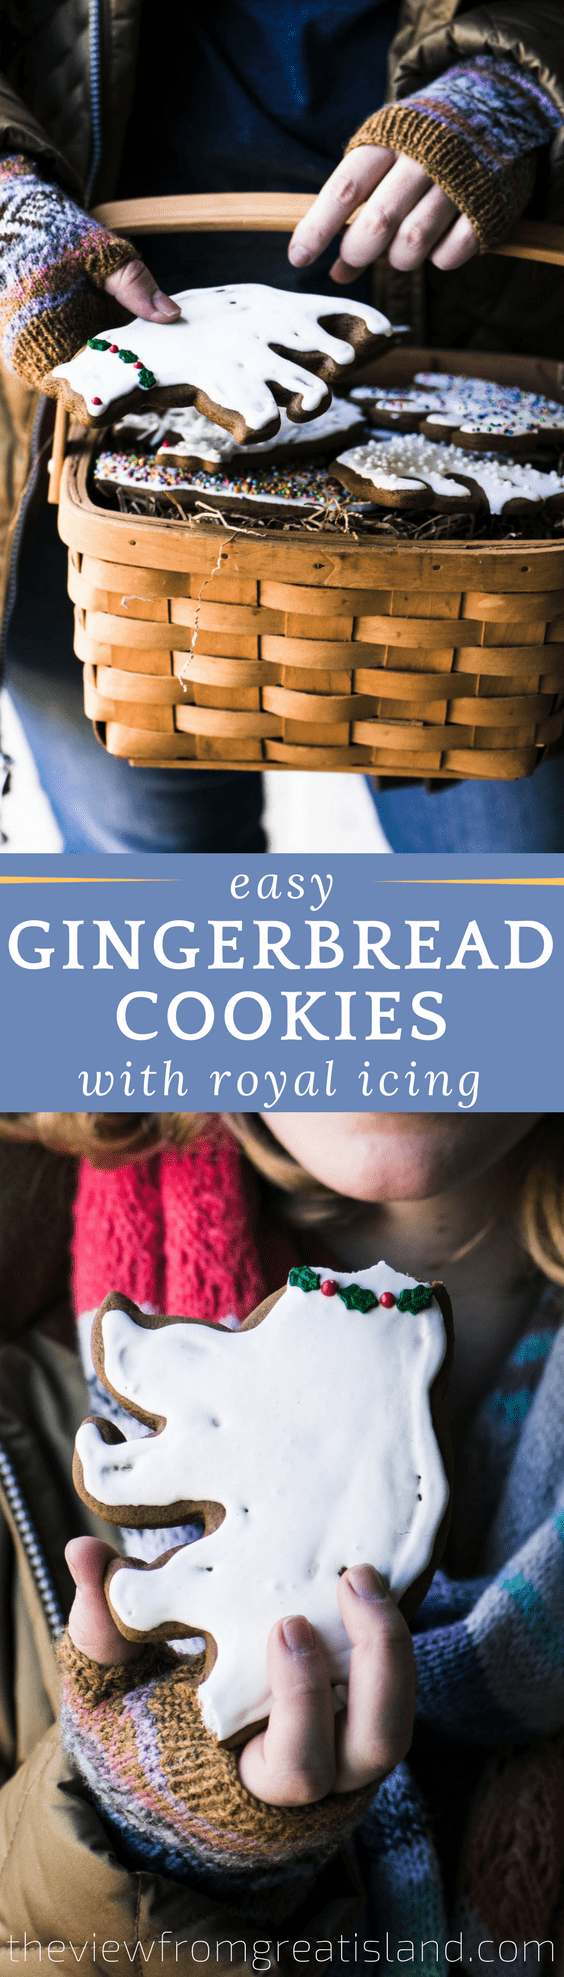 Easy Gingerbread Cookies with Royal Icing ~ it's that time of year and nothing gets me in the mood quicker than baking up a batch of gingerbread cookies! #gingerbread #cookies #Christmascookies #cutoutcookies #holidaycookies #dessert #foodgift #Christmasdessert #bestgingerbread #easygingerbread #gingerbreadrecipe #easyrecipe #royalicing #easyroyalicing #bestroyalicing